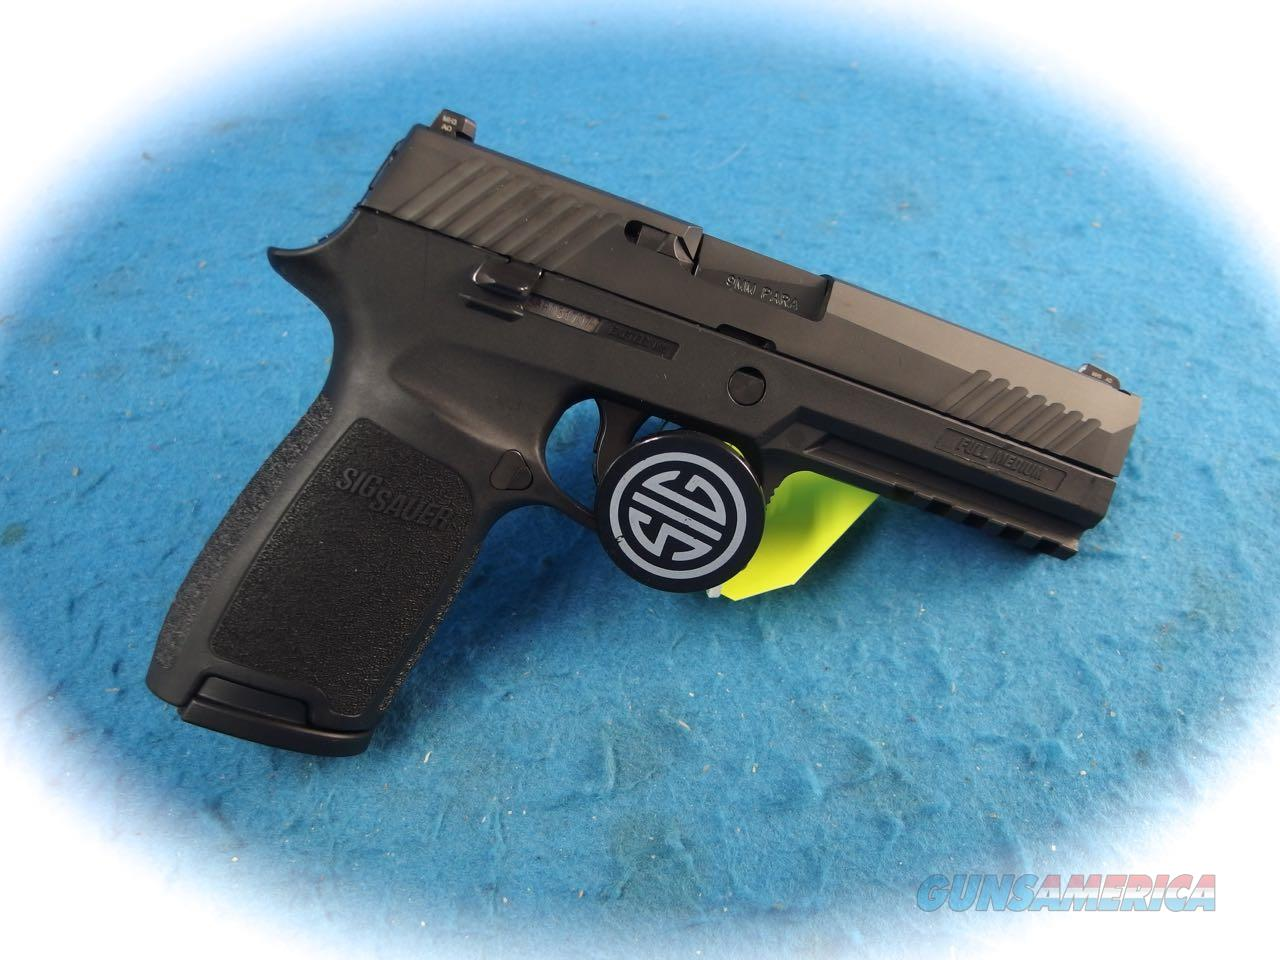 Sig Sauer P320 Full Size 9mm Semi Auto Pistol **Used**  Guns > Pistols > Sig - Sauer/Sigarms Pistols > P320